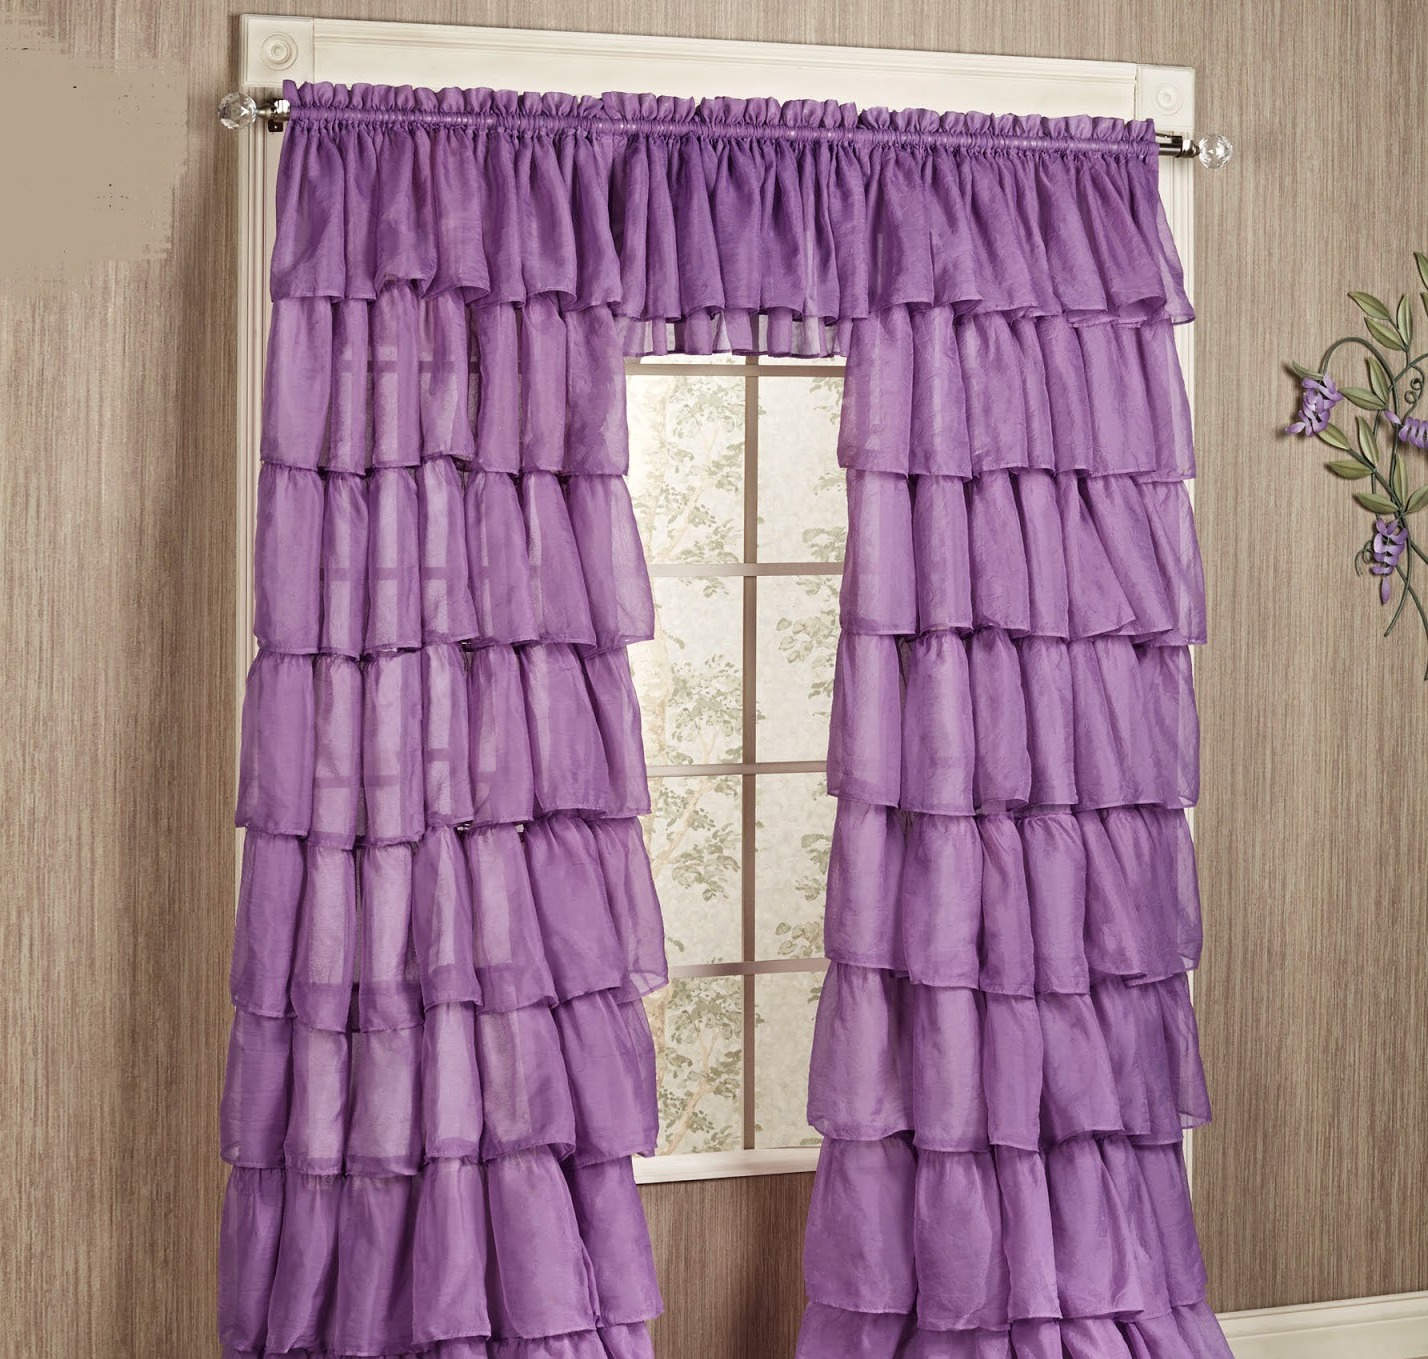 september-2014-the-home-aseor-design-ruffle-purple-curtains-for-windows_austrian-decorating-ideas_ideas_graphic-design-ideas-houzz-interior-fingernail-backyard-landscape-living-room-curtain-acrylic-na